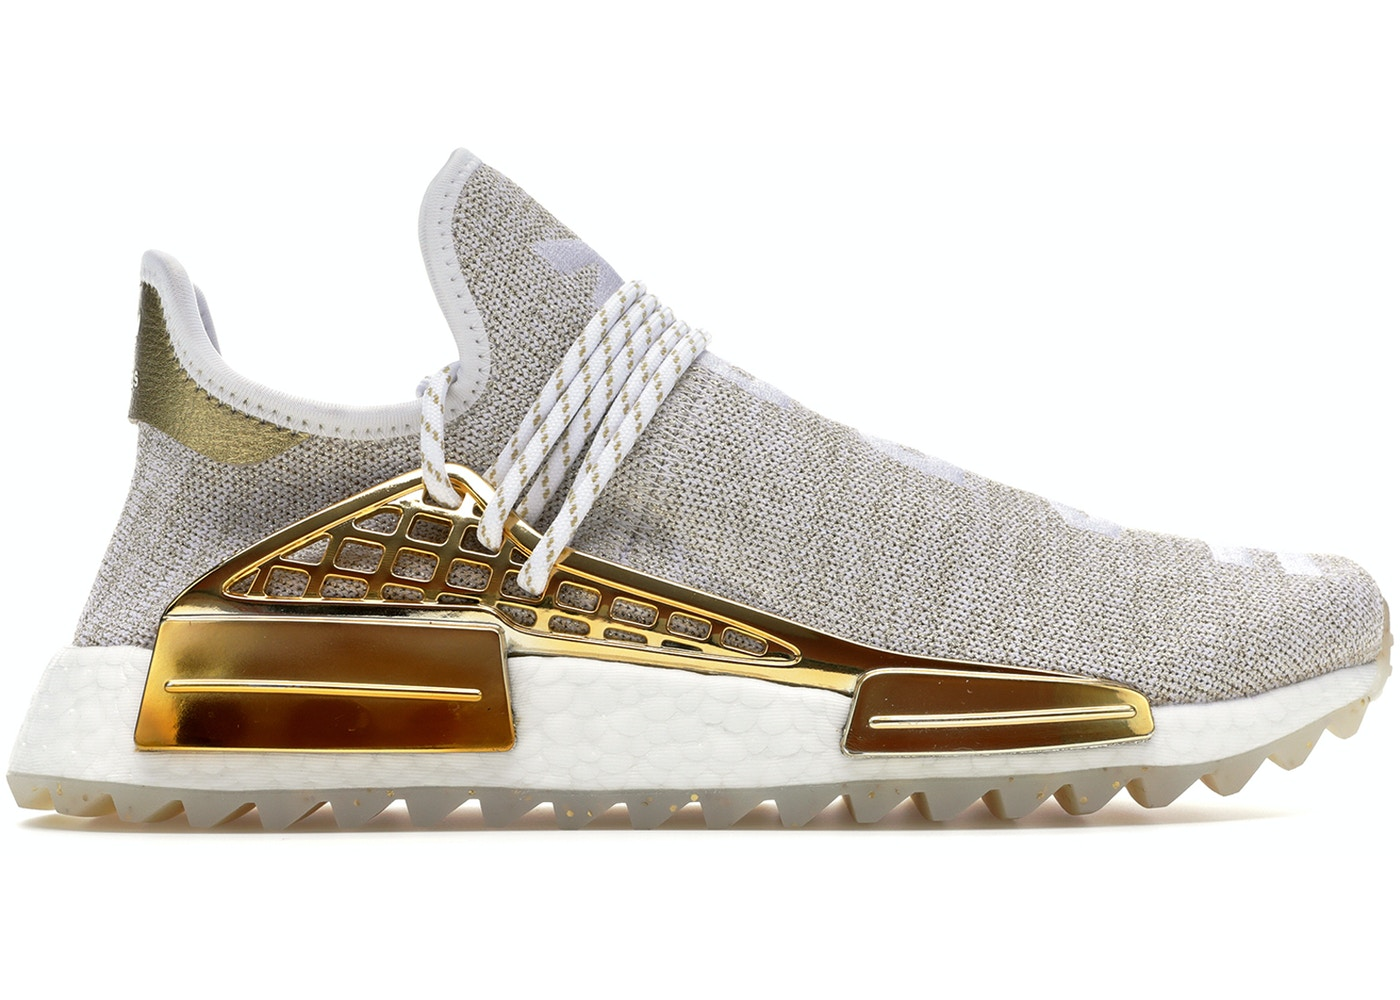 quality design 6cdea 4bce5 adidas Pharrell NMD HU China Pack Happy (Gold) (Friends and Family) - F99762